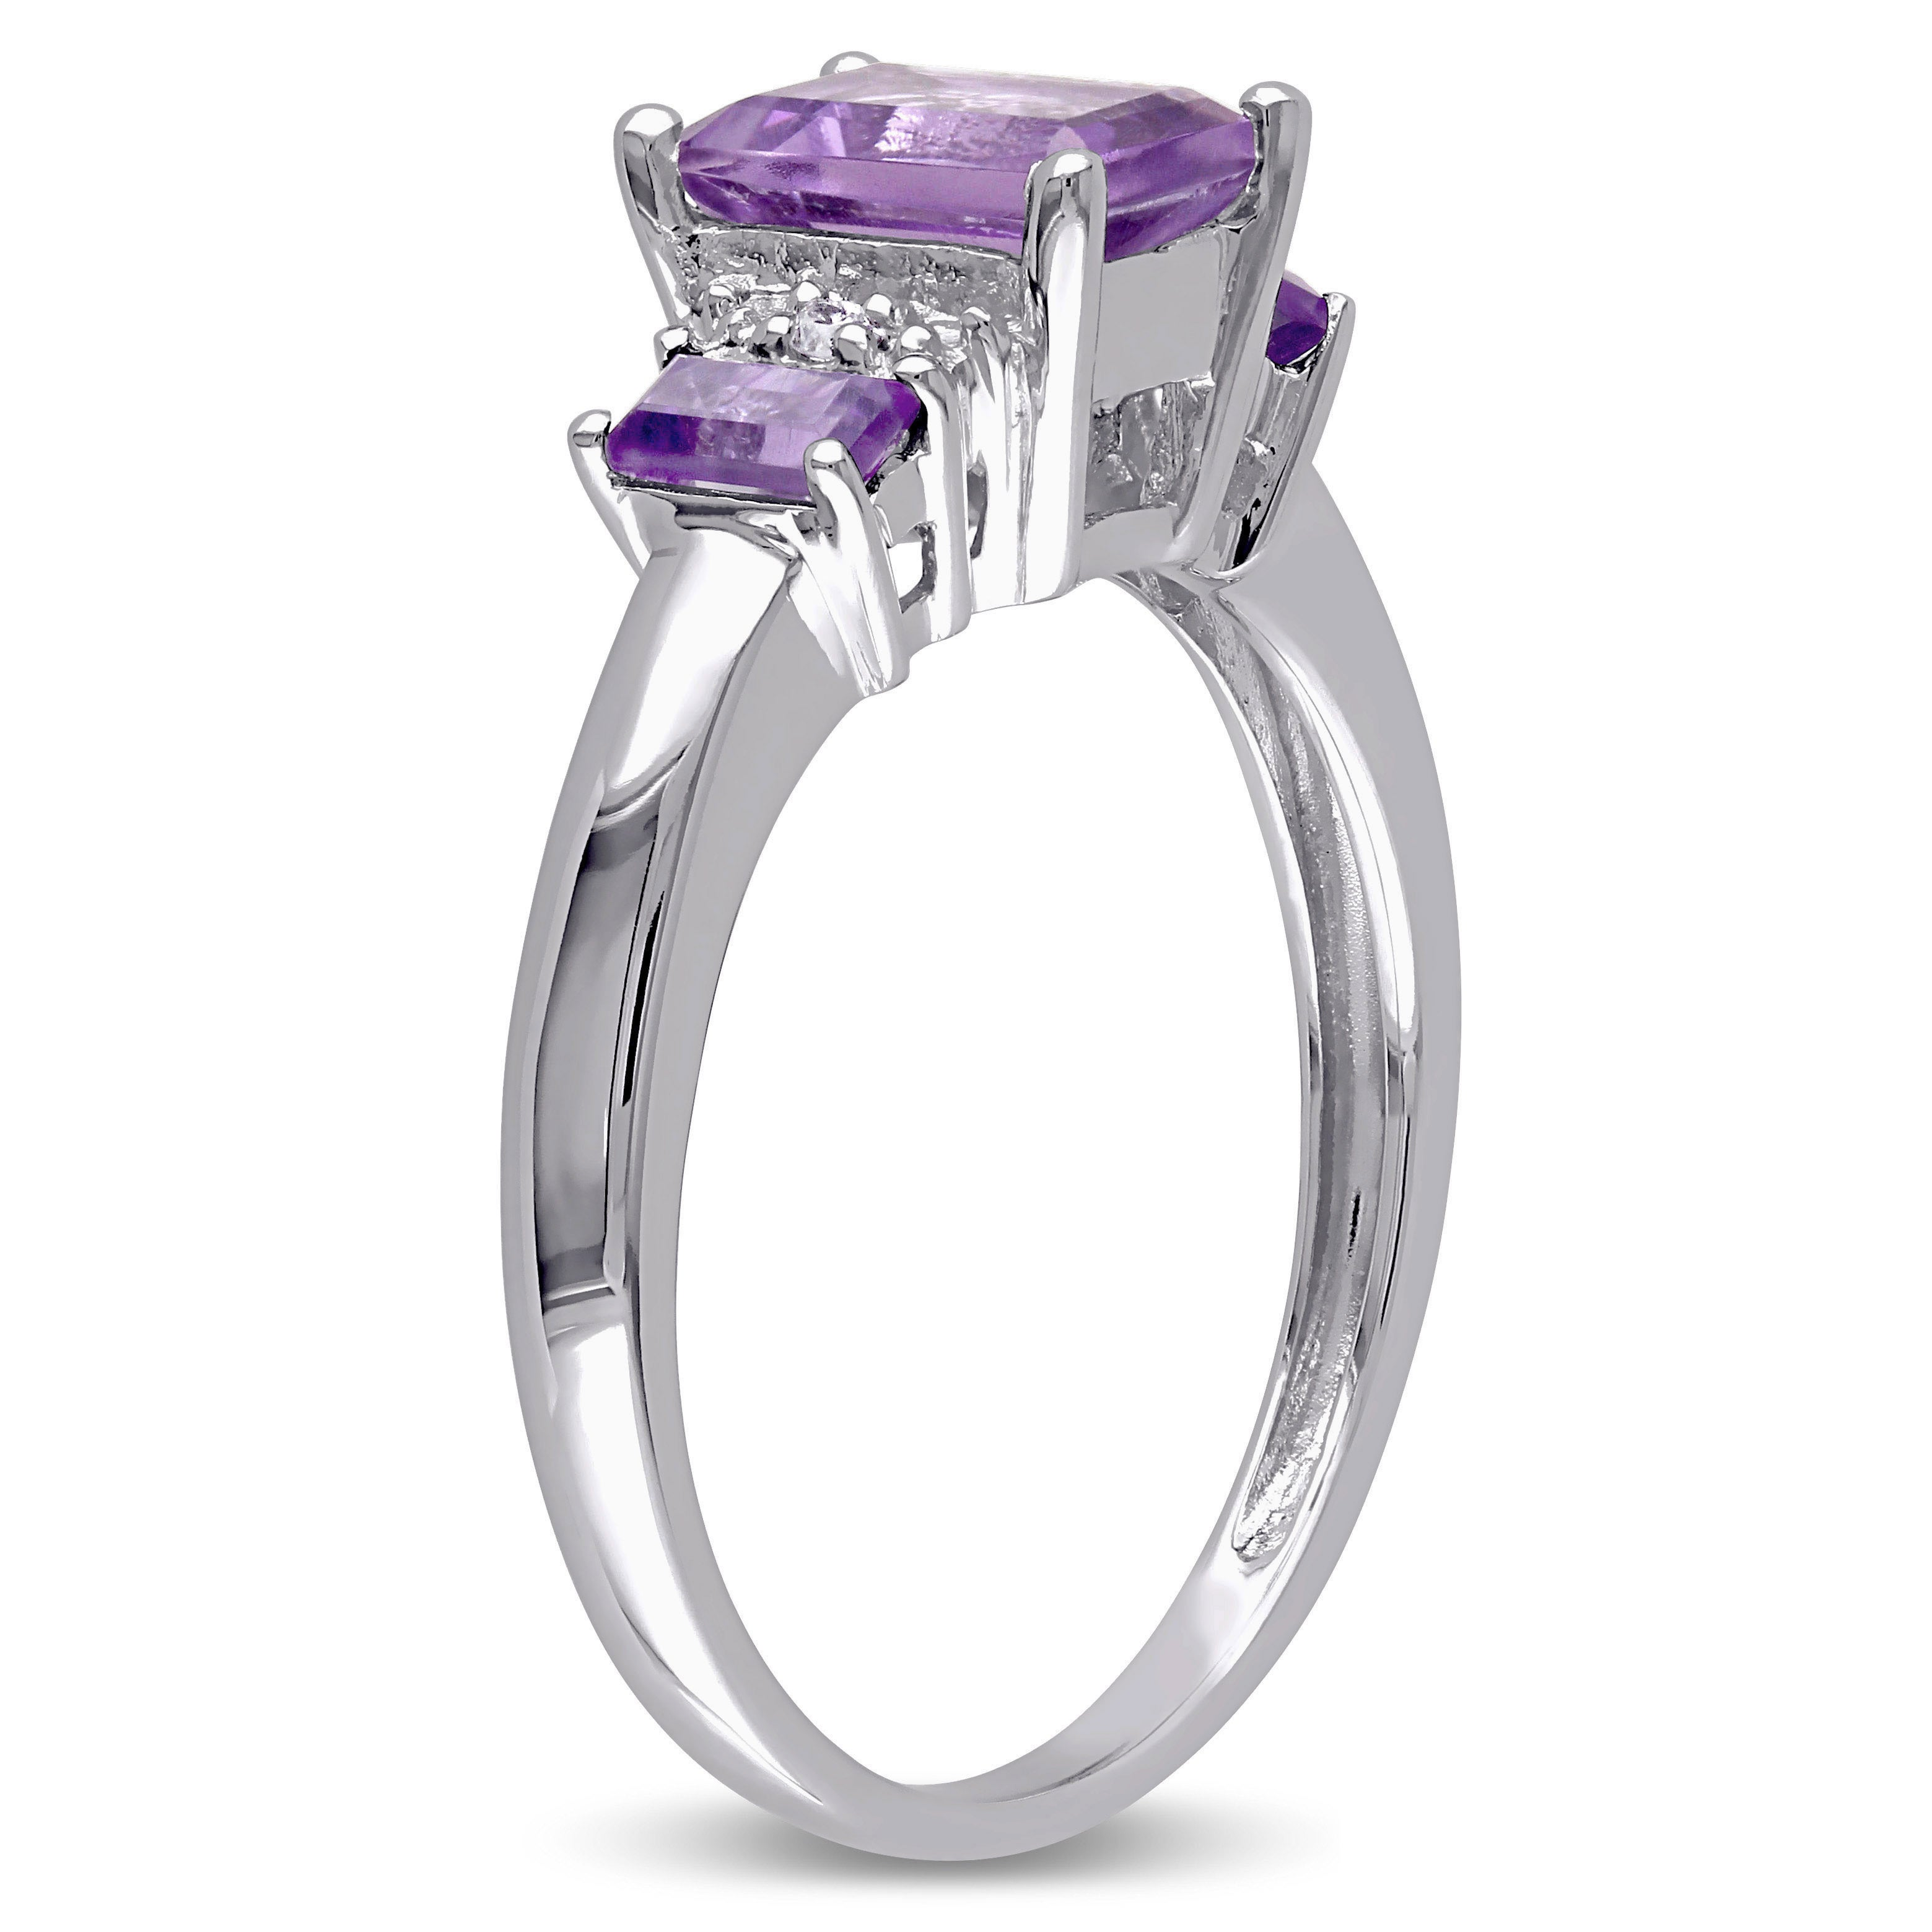 Details about  /Three stone 0.92 Cts Amethyst Vivid Purple 14k White Gold Accent Ring